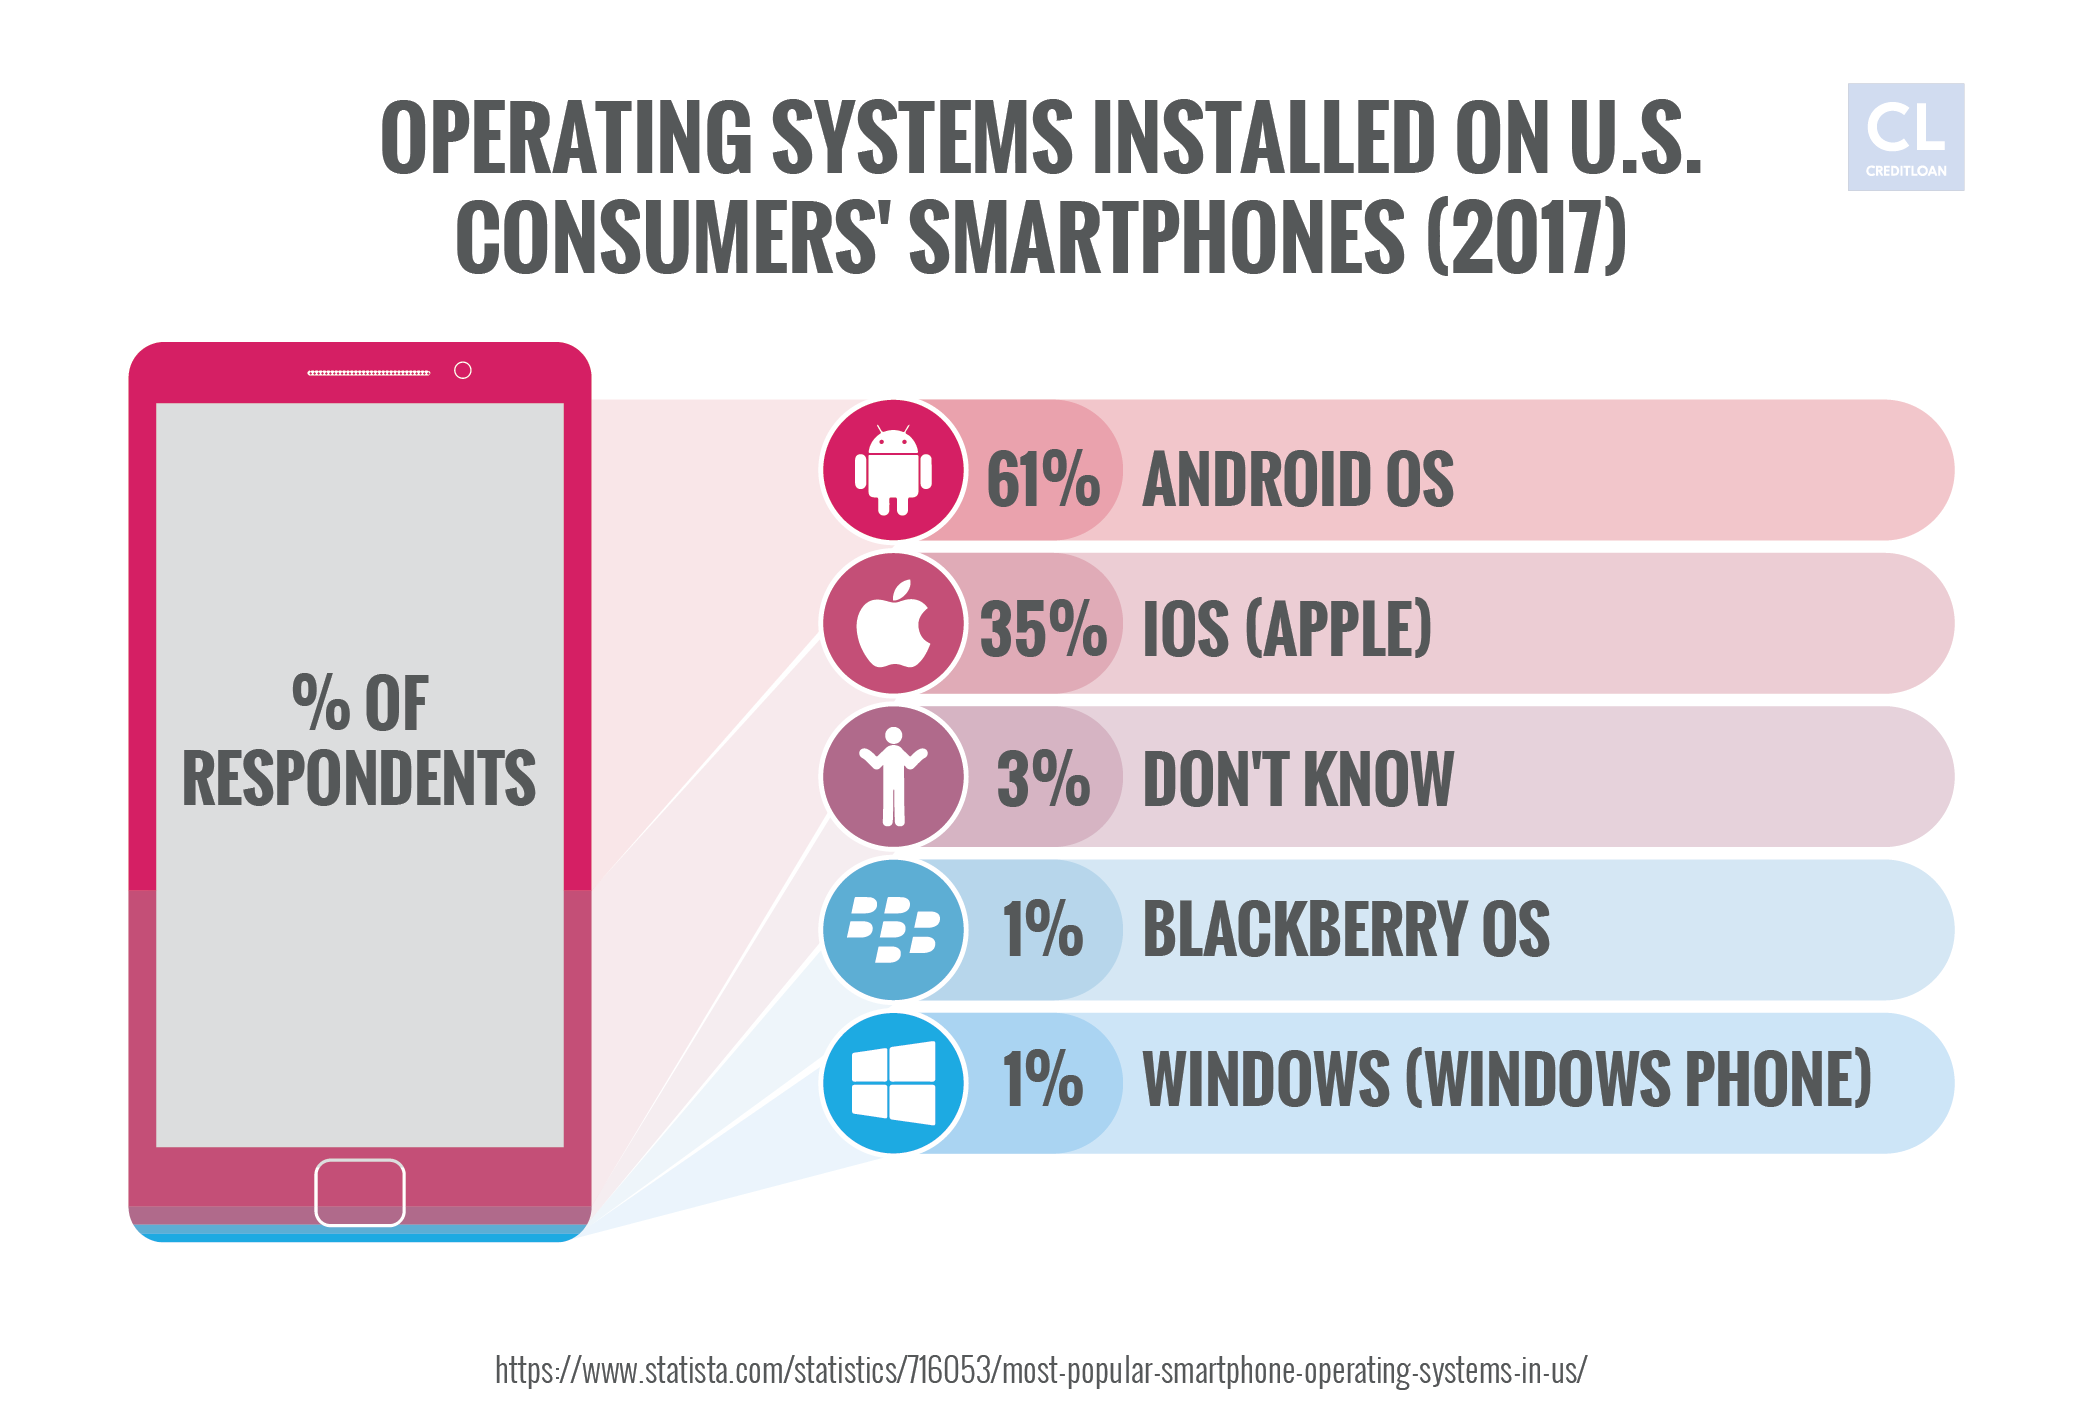 2017 Operating Systems Installed on U.S. Consumers' Smartphones